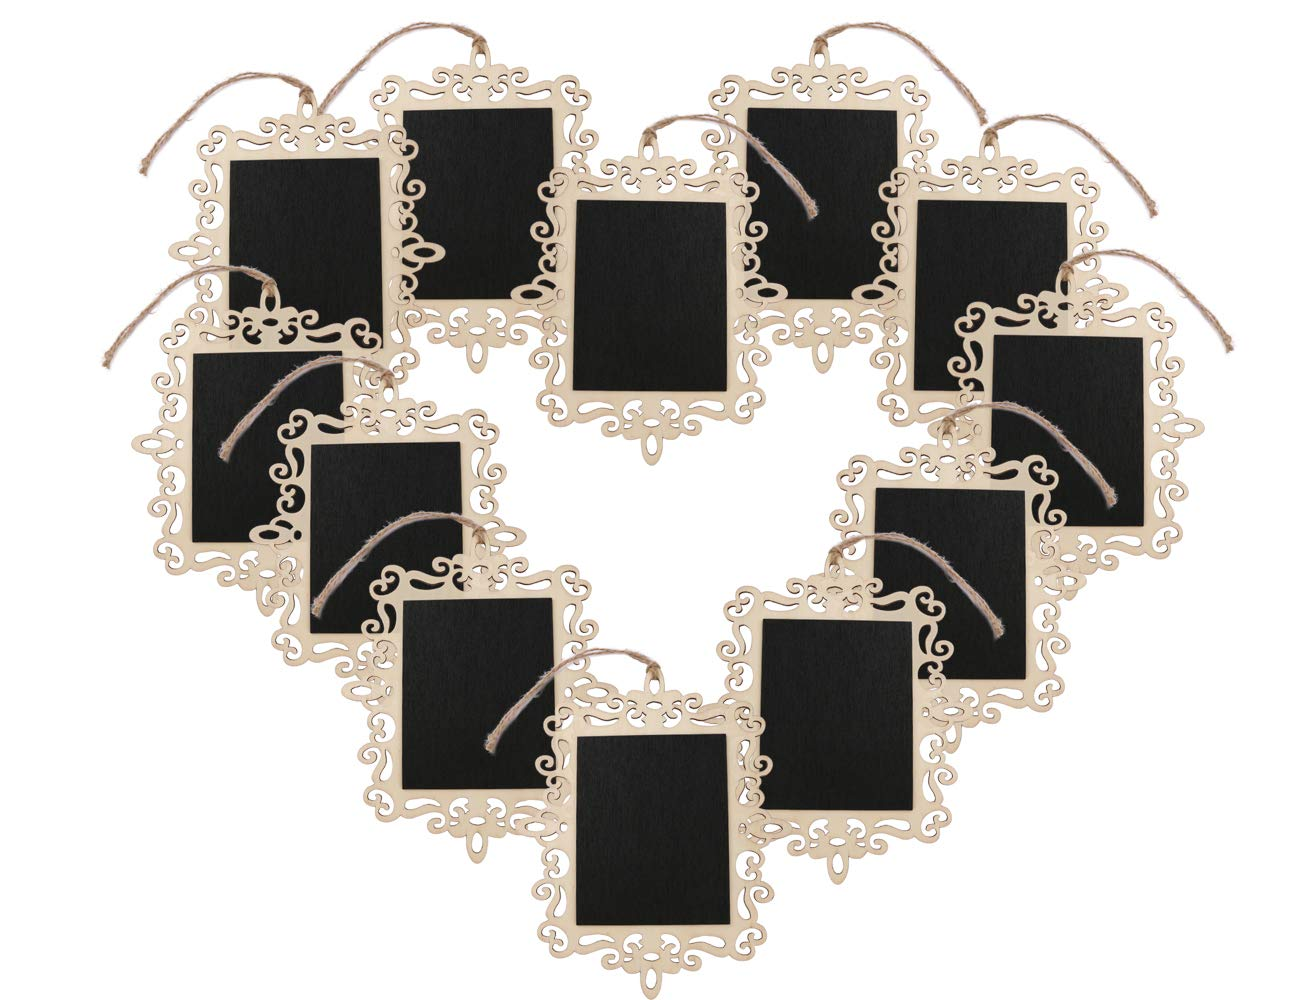 Dedoot 12pcs Hanging Chalkboard Signs Mini Chalkboard Signs with Decorative Boarder - Decorative Chalkboards Rectangle Message Board for Walls, Wedding, Parties, Kitchen Decoration by Dedoot